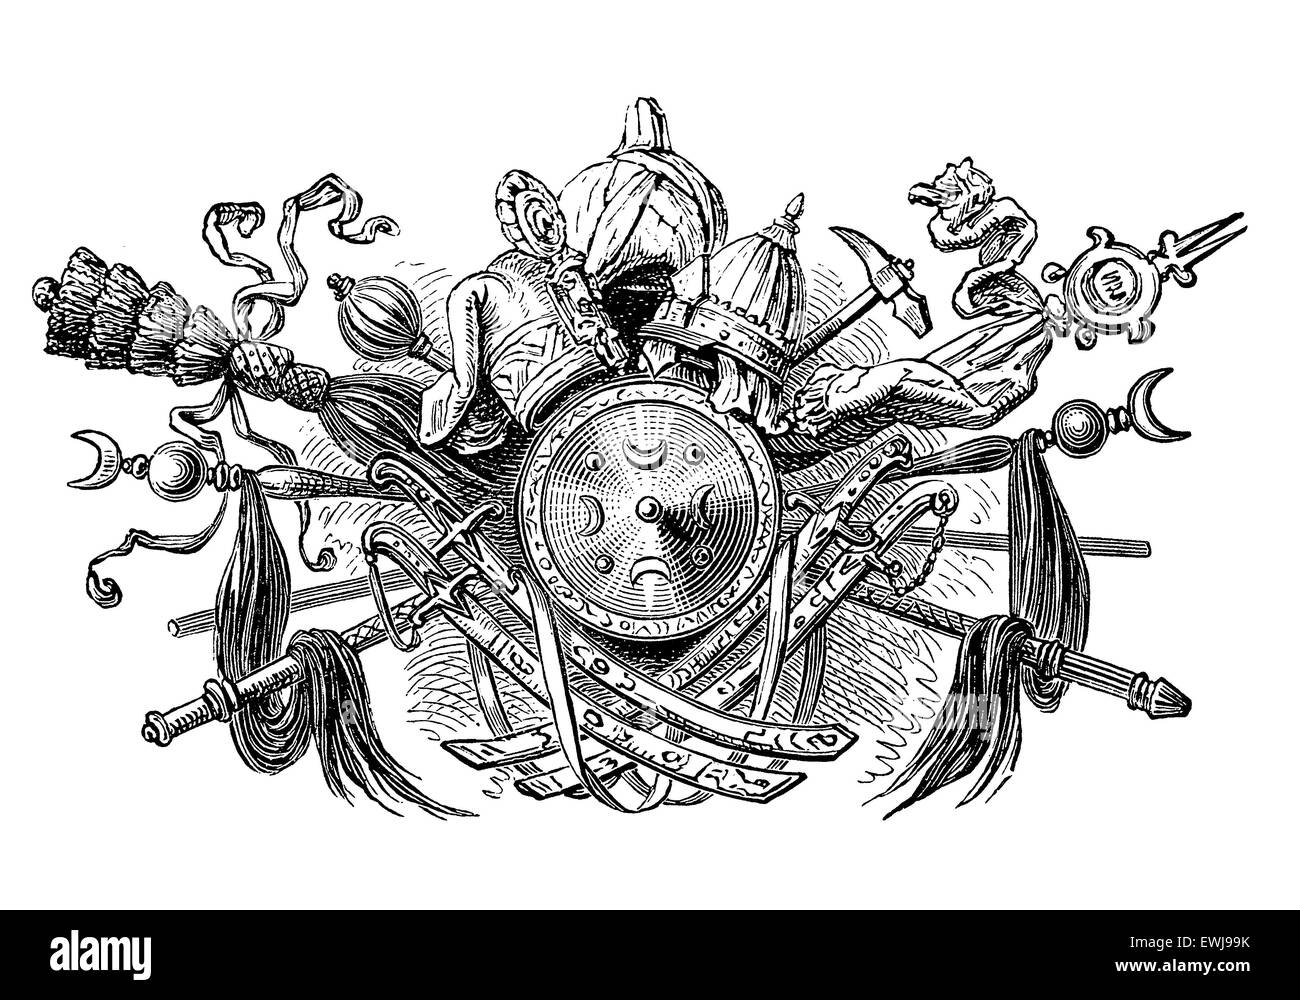 Panoply of weaponry,arranged as a triumph around a shield with Muslim Symbols - Stock Image